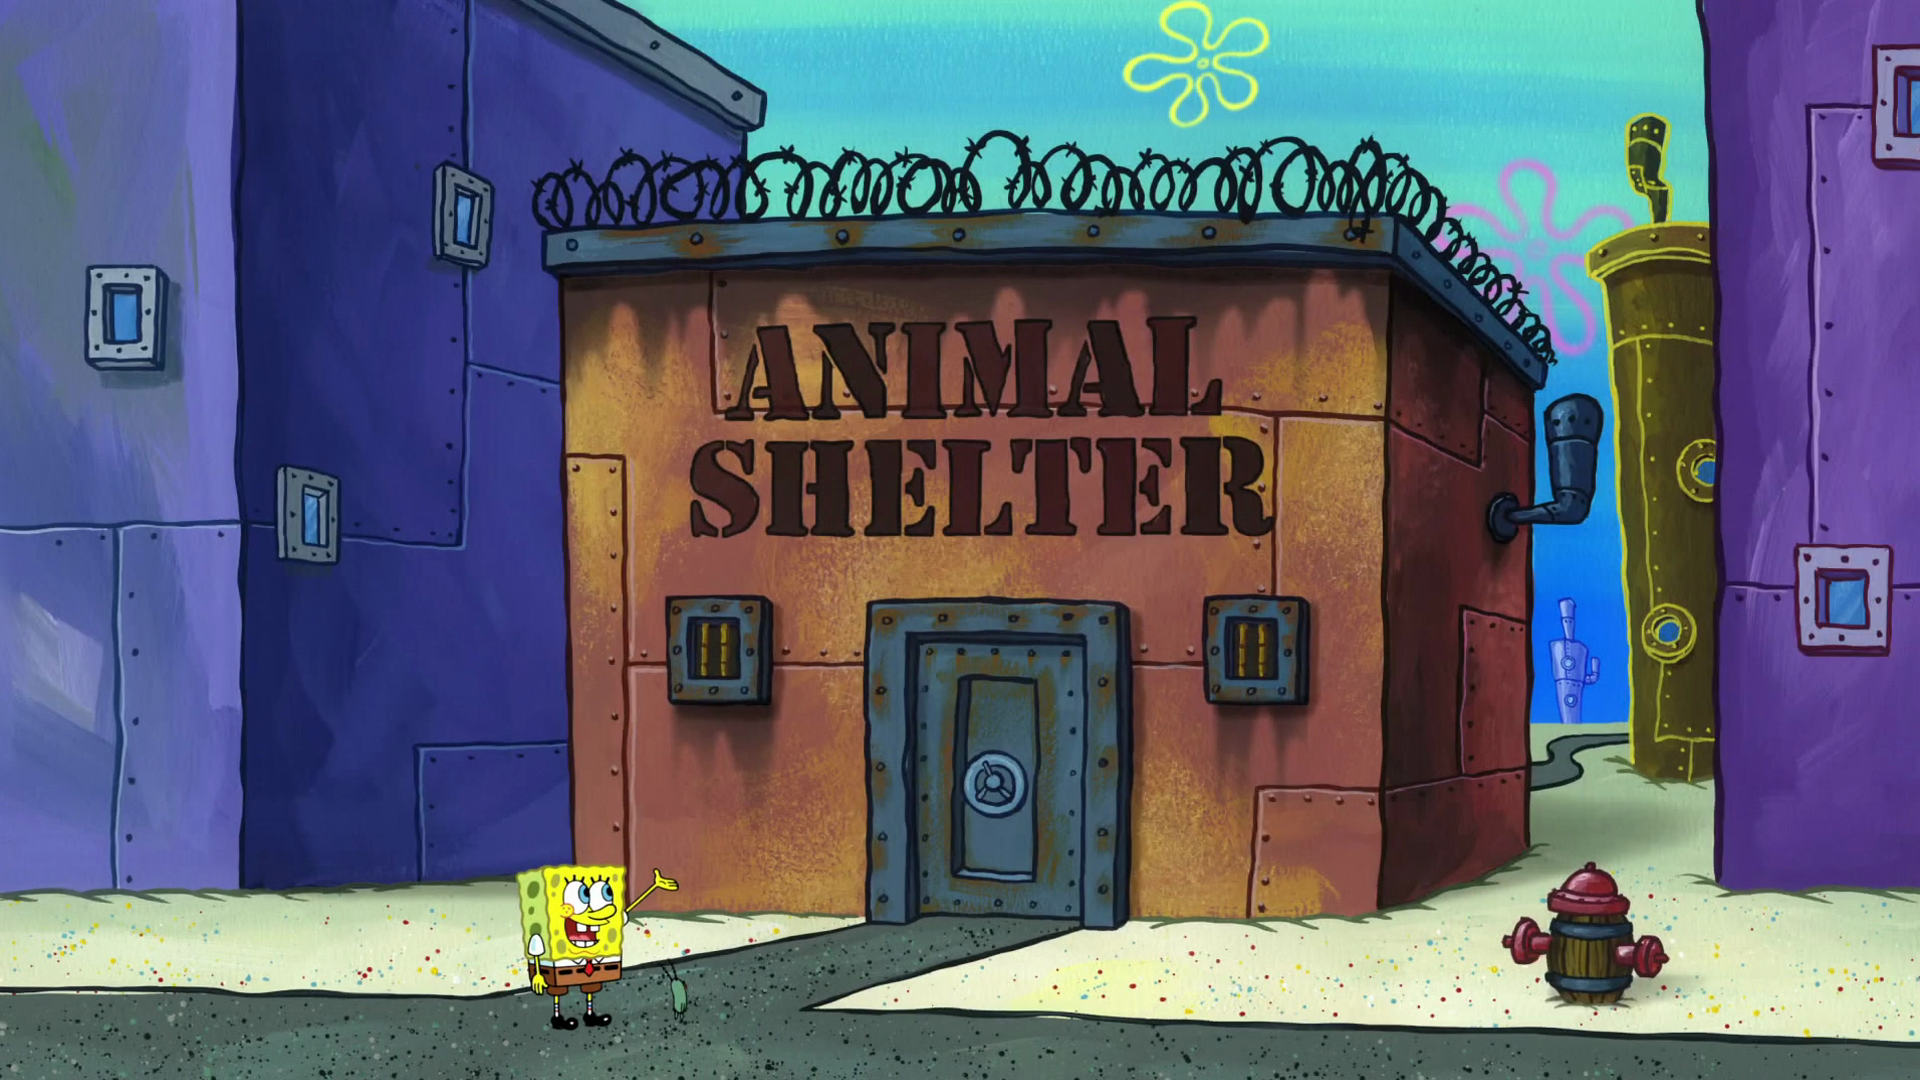 Animal shelter/gallery